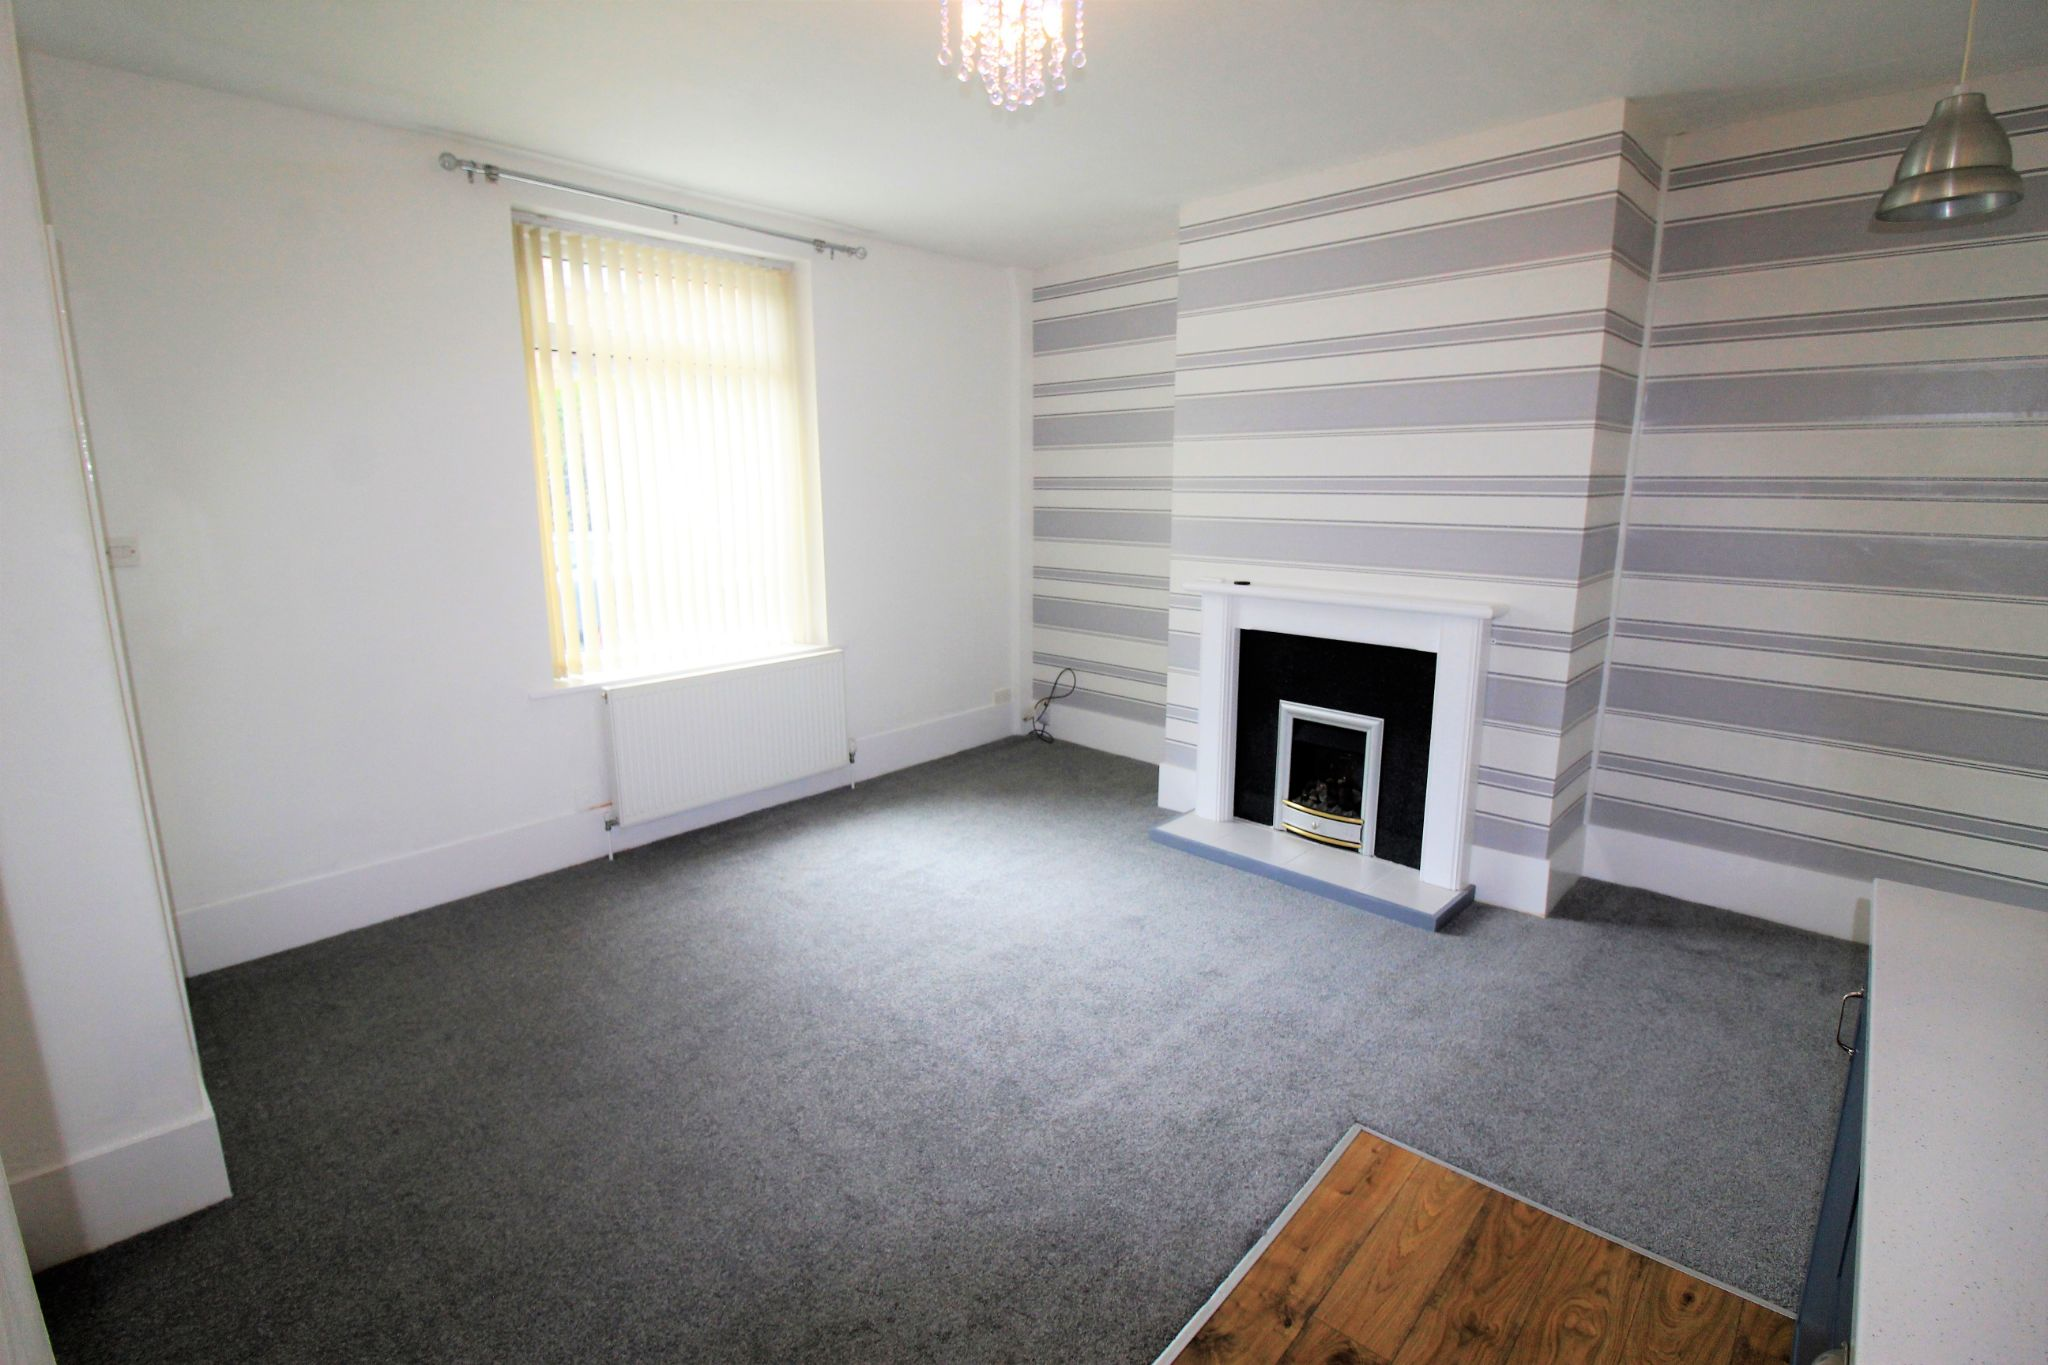 2 bedroom semi-detached house For Sale in Huddersfield - Lounge / kitchen